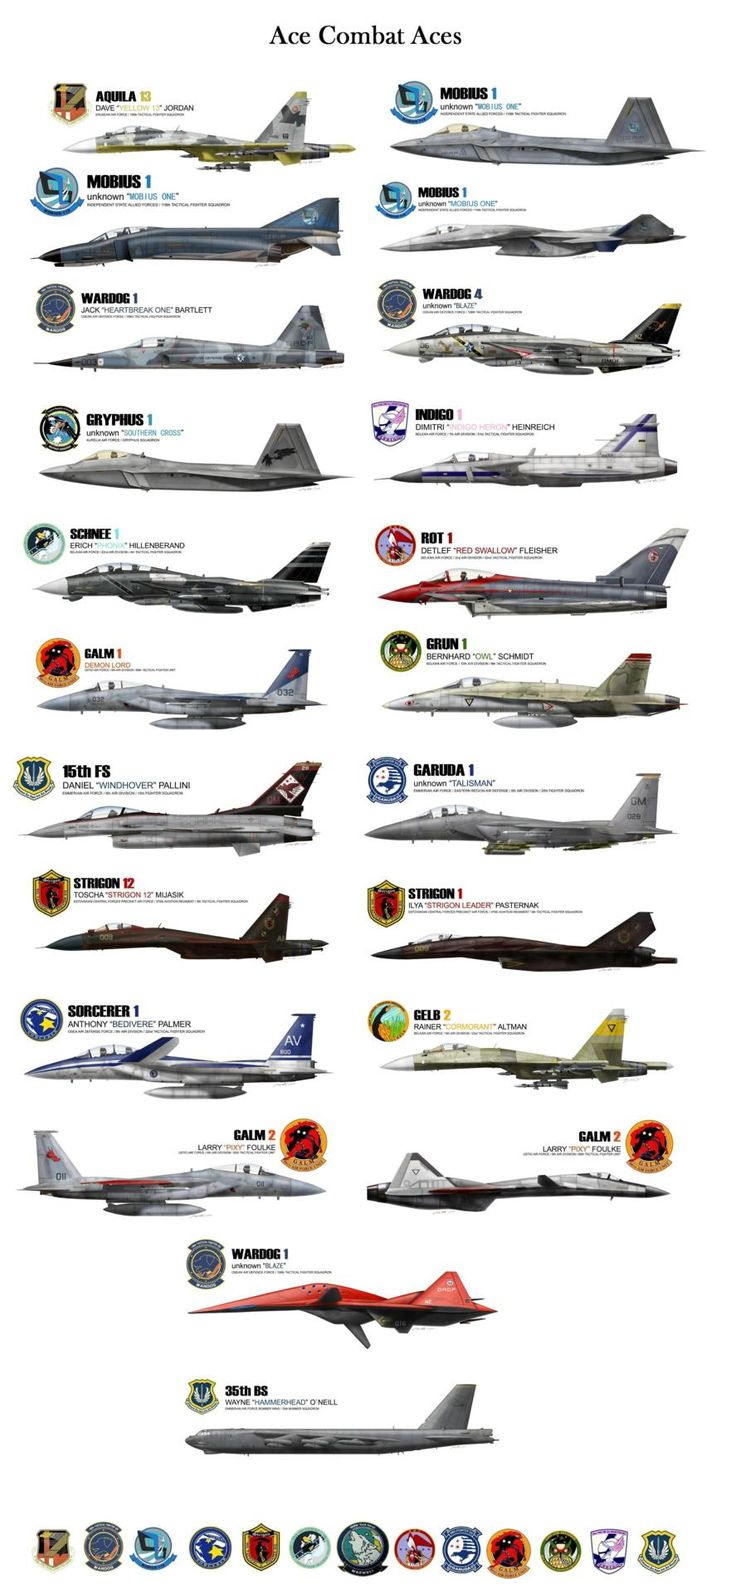 2098 best Airplanes images on Pinterest | Air force, Airplanes and ...